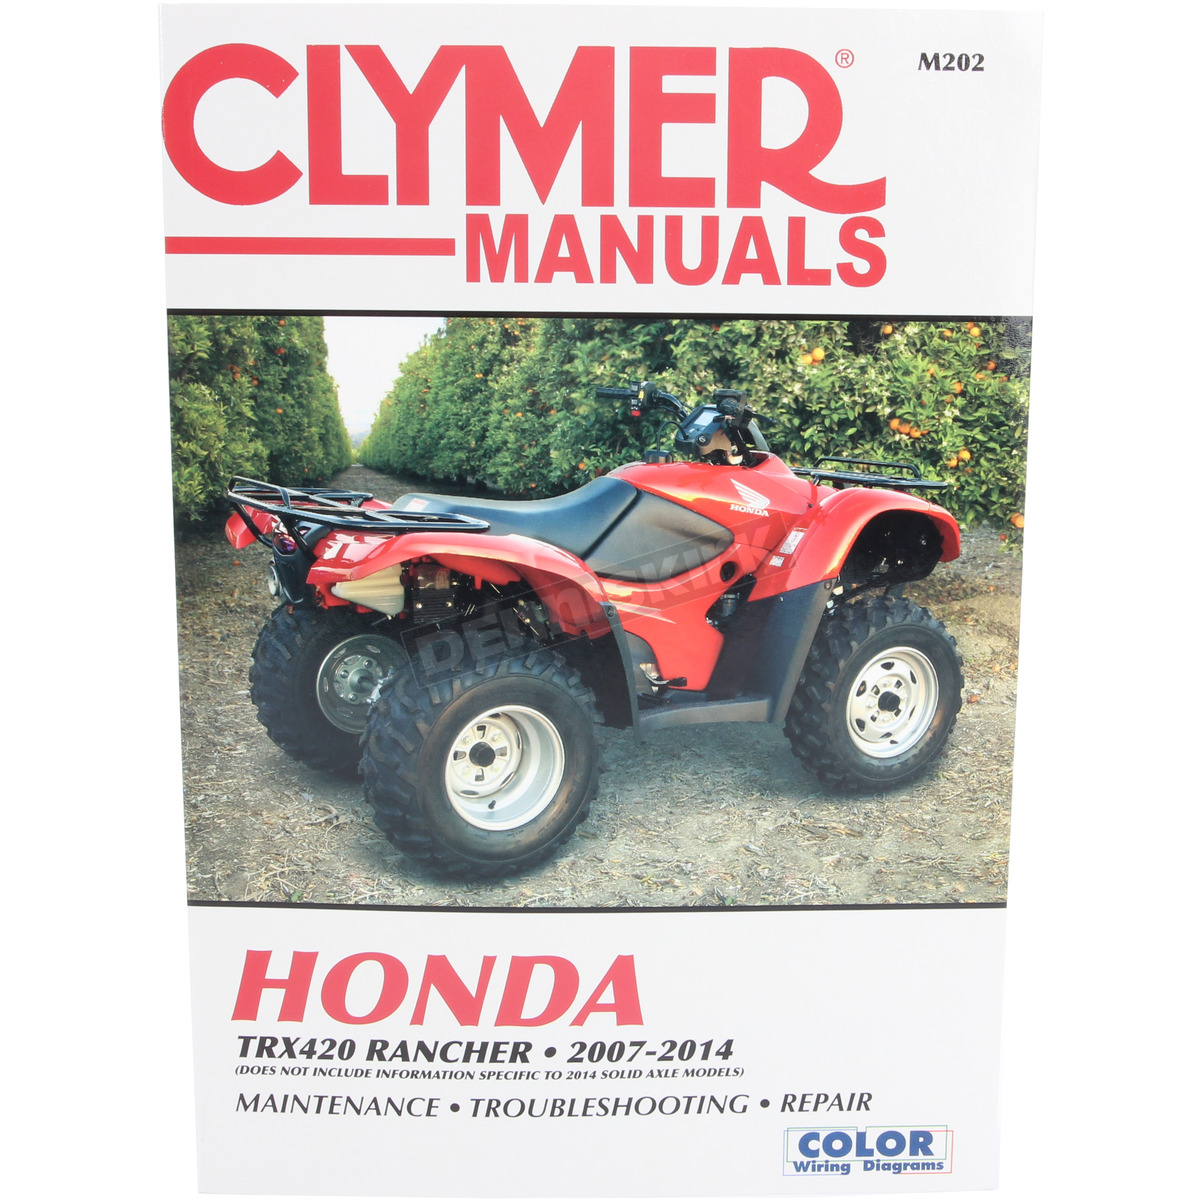 Trx420fpe Manual Diagram Of Honda Motorcycle Parts 2001 Vf750c A Alternator Array Clymer M202 Dennis Kirk Rh Denniskirk Com